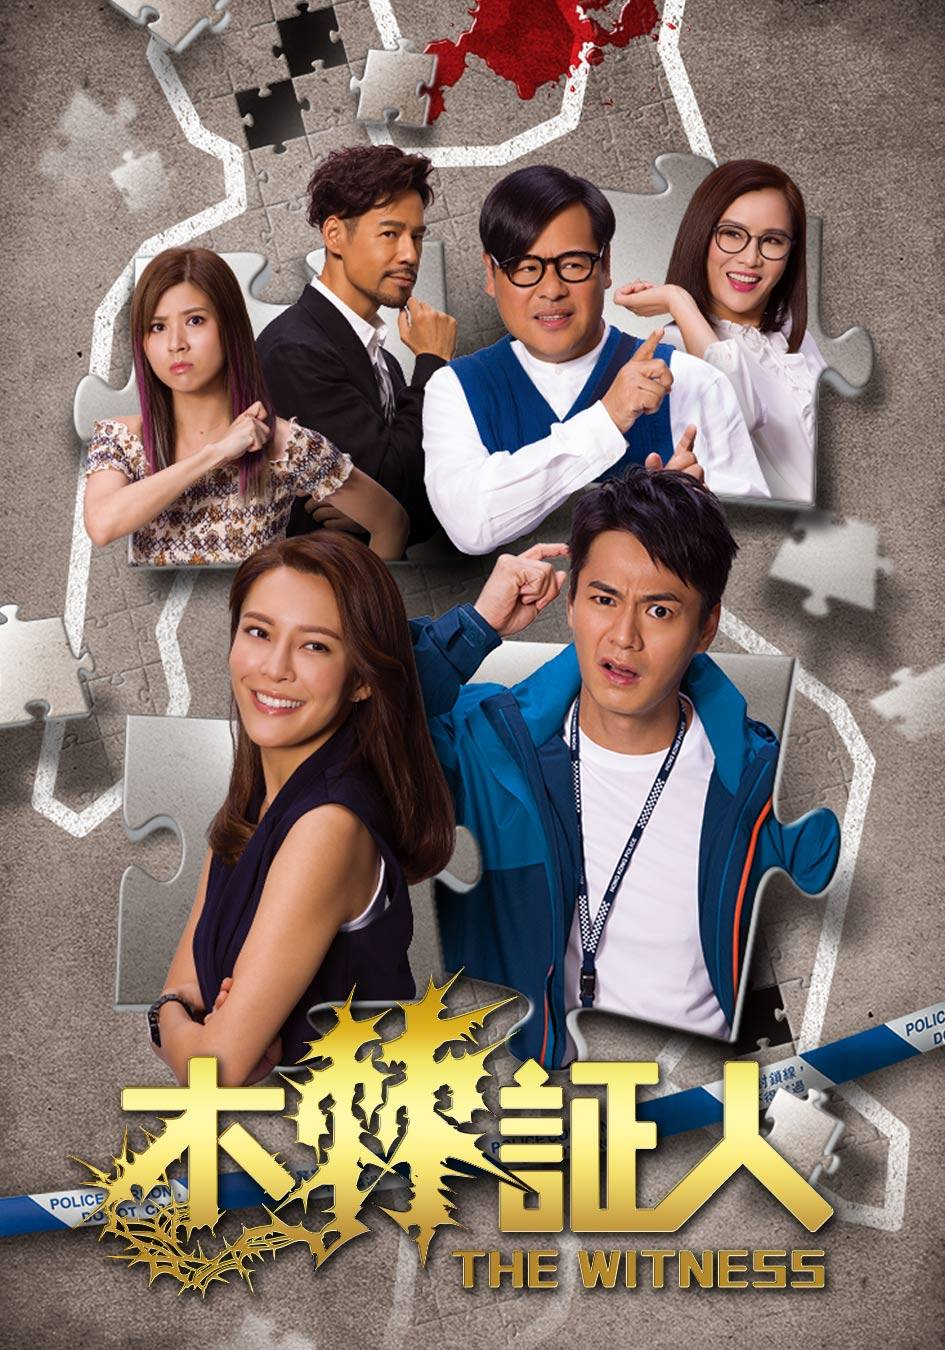 木棘证人 全20集 国粤双语 簡繁字幕 Jade The Witness Complete HDTV 1080i x264 2Audio-CHDHKTV